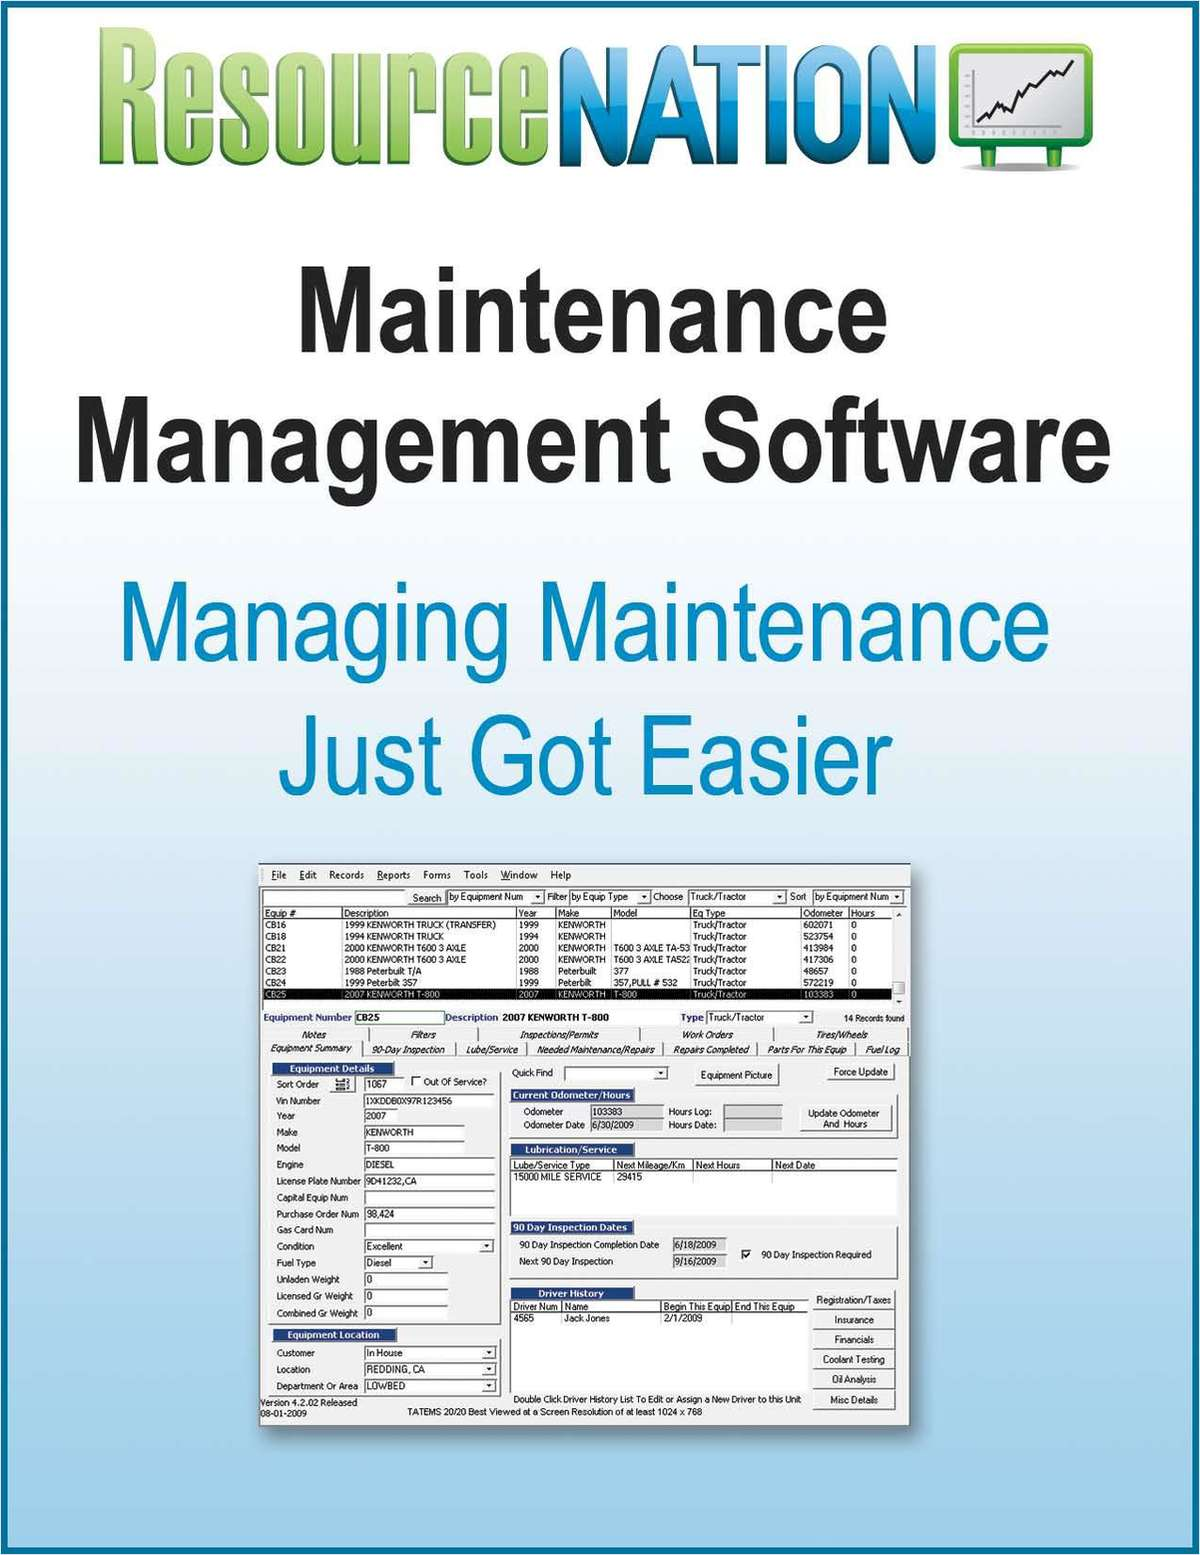 How to Run Your Maintenance Operations More Efficiently with Maintenance Management Software